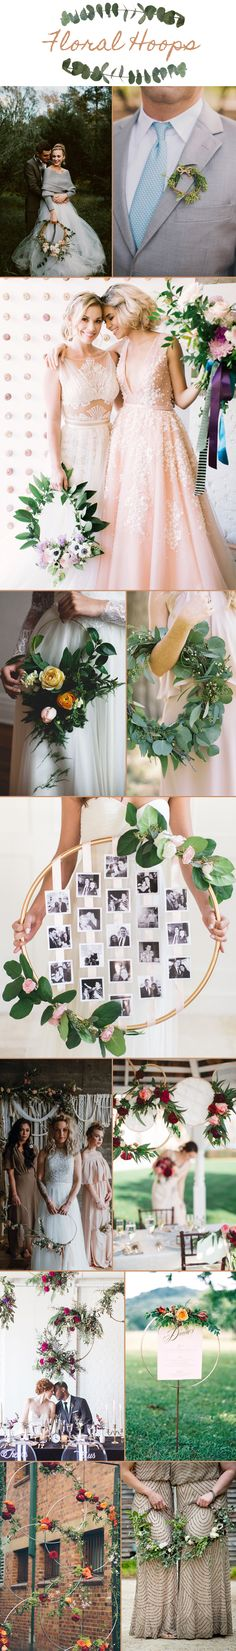 fiftyflowers-floral-hoop-bouquets